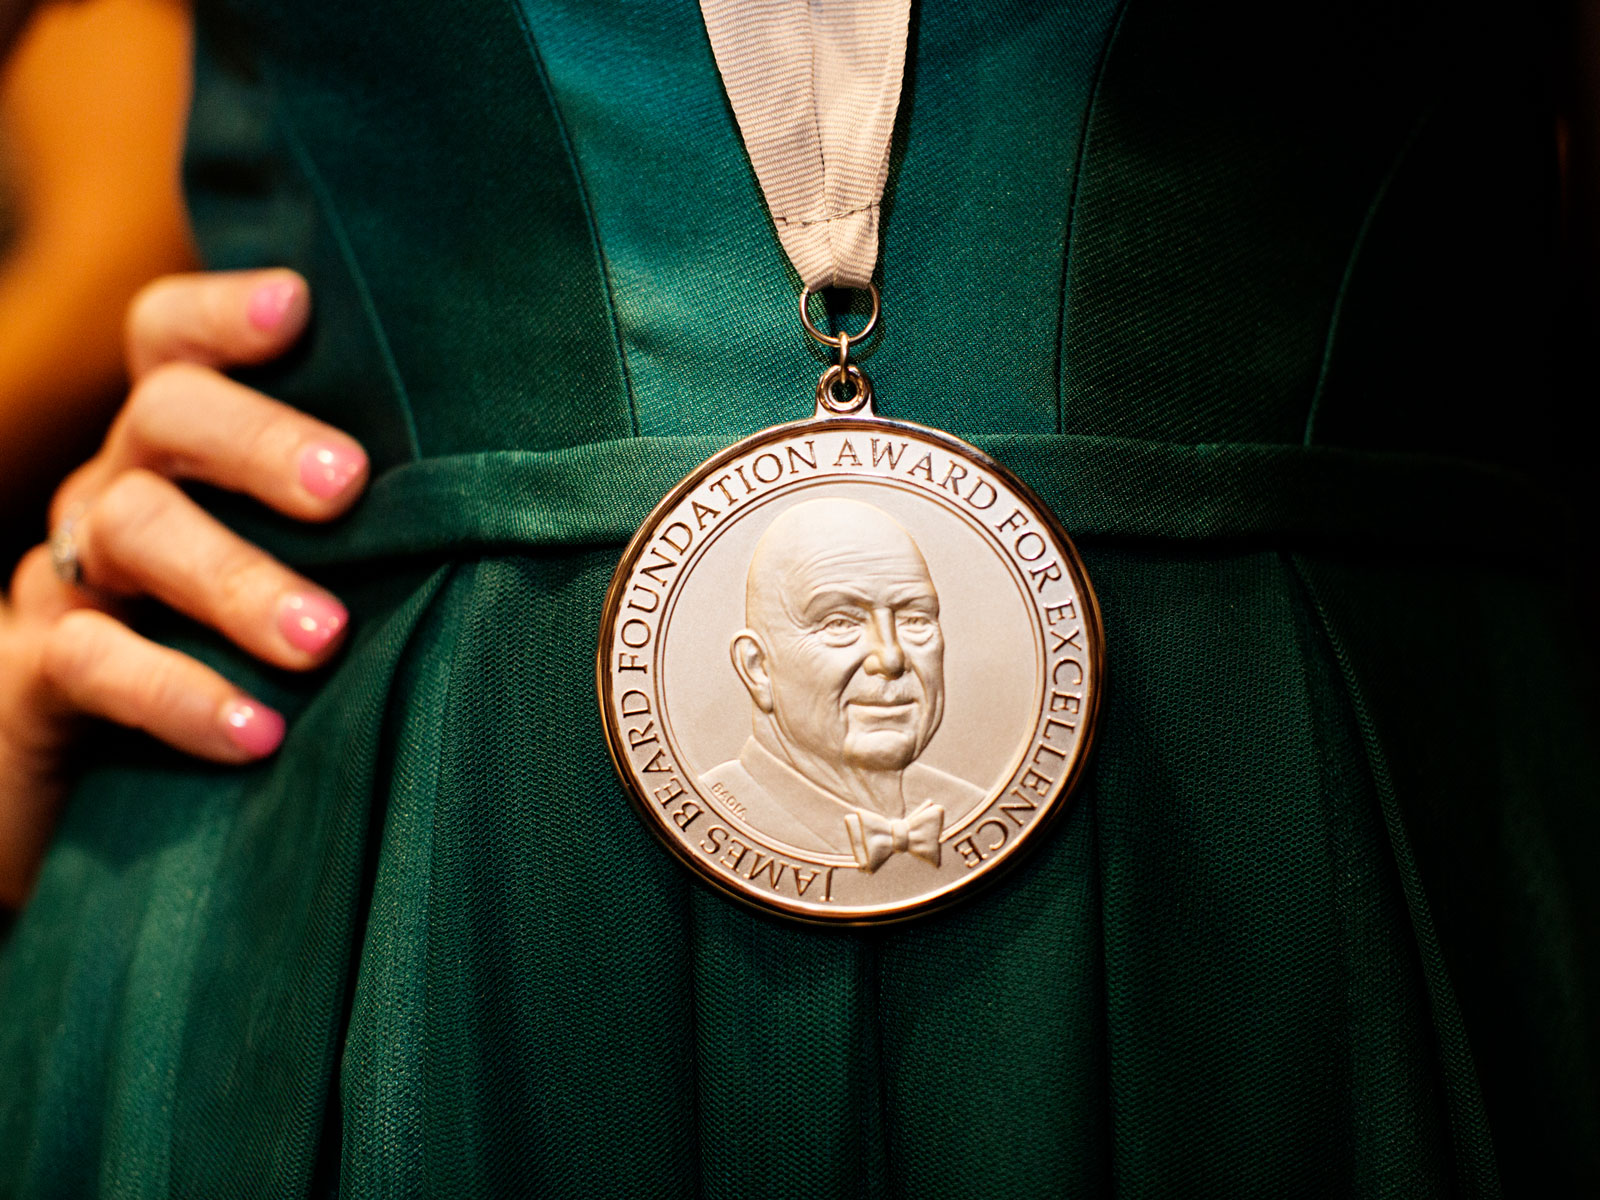 James Beard Awards 2019: Here Are This Year's Winners